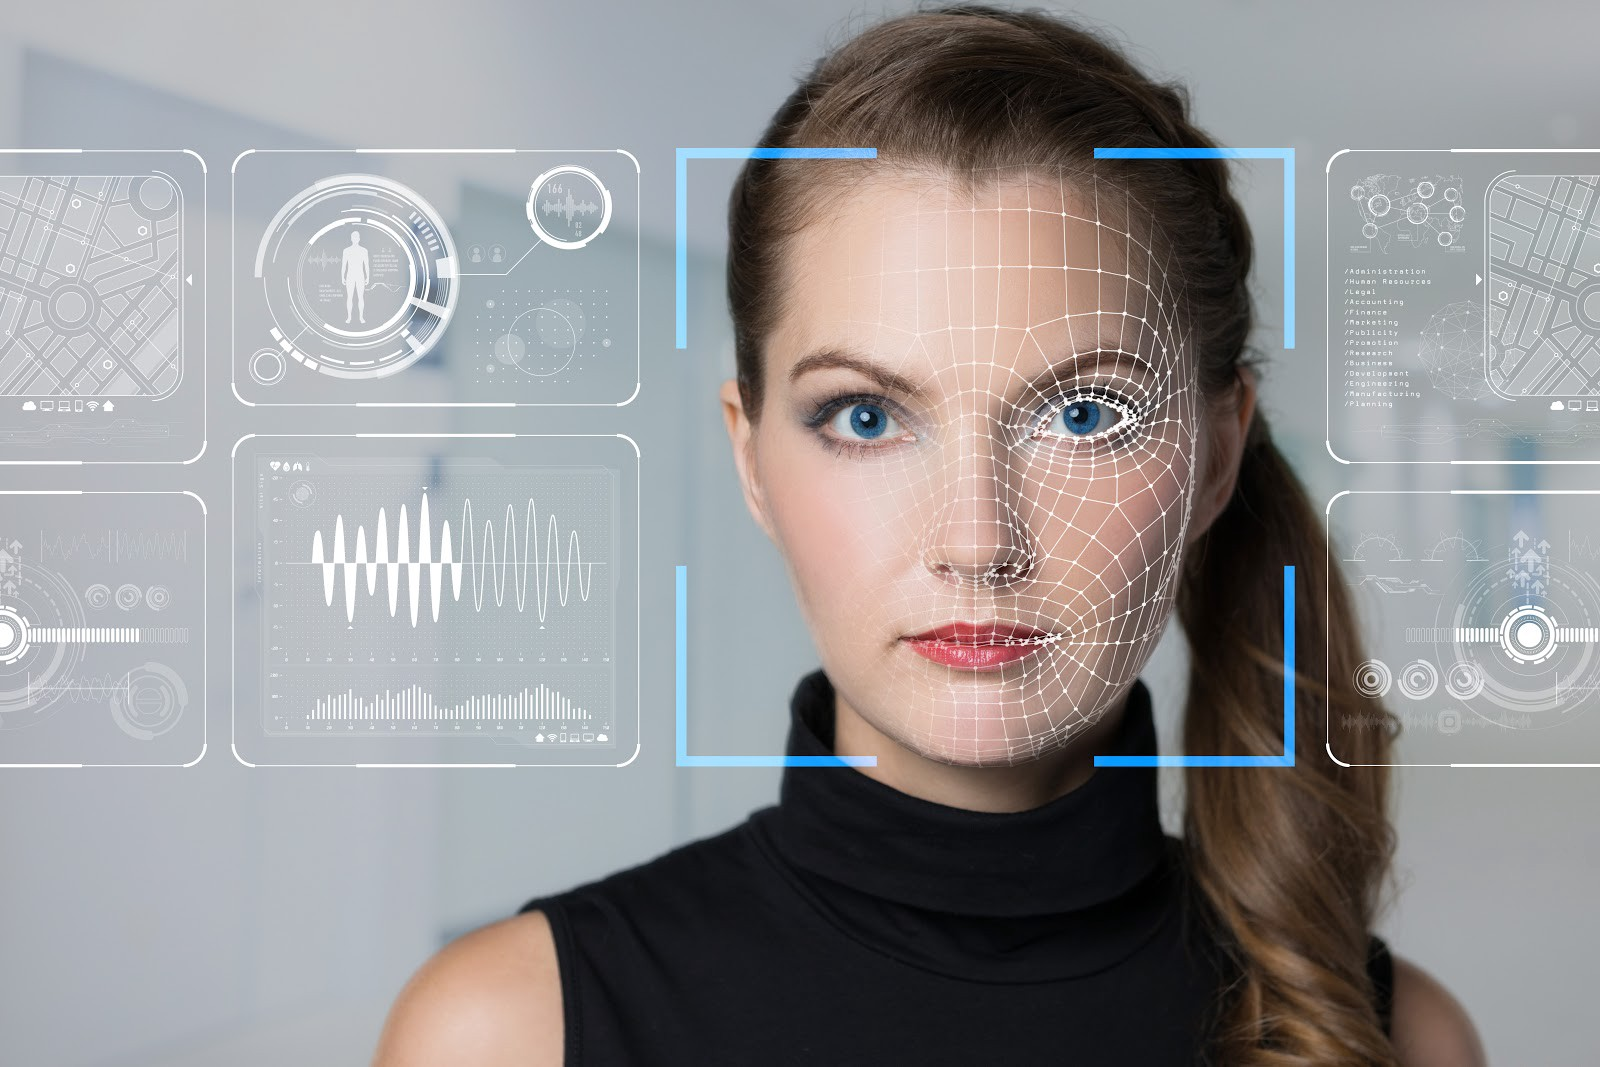 AI Chatbots and Recognition Technology: How Do The Machines